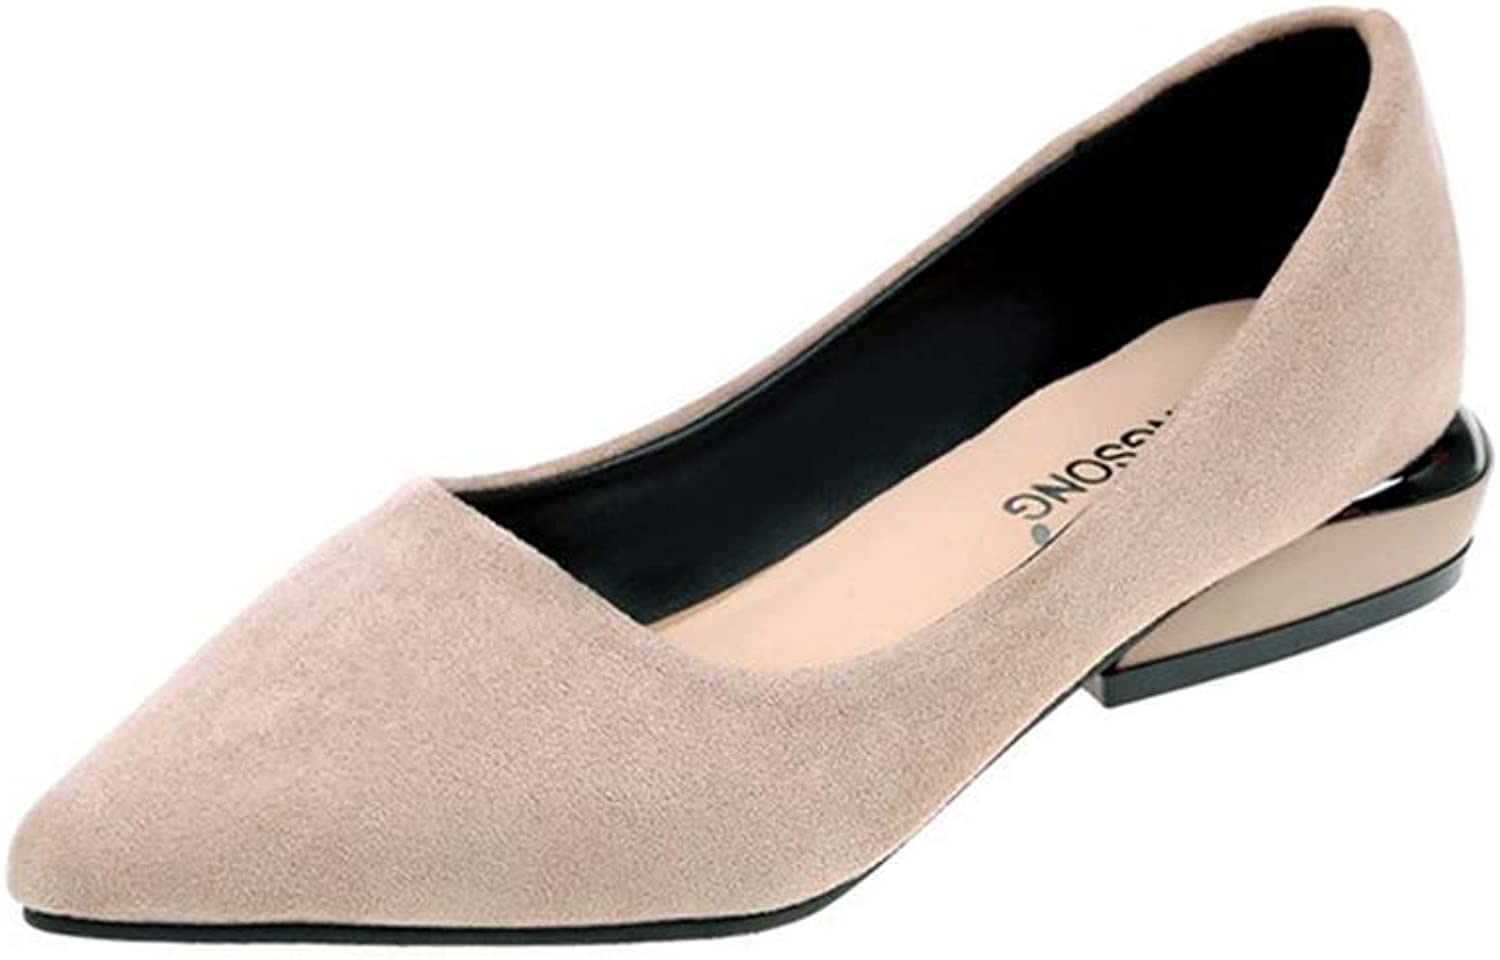 FORTUN Women's Dress shoes Flat shoes Pointed Toe Casual shoes Pumps